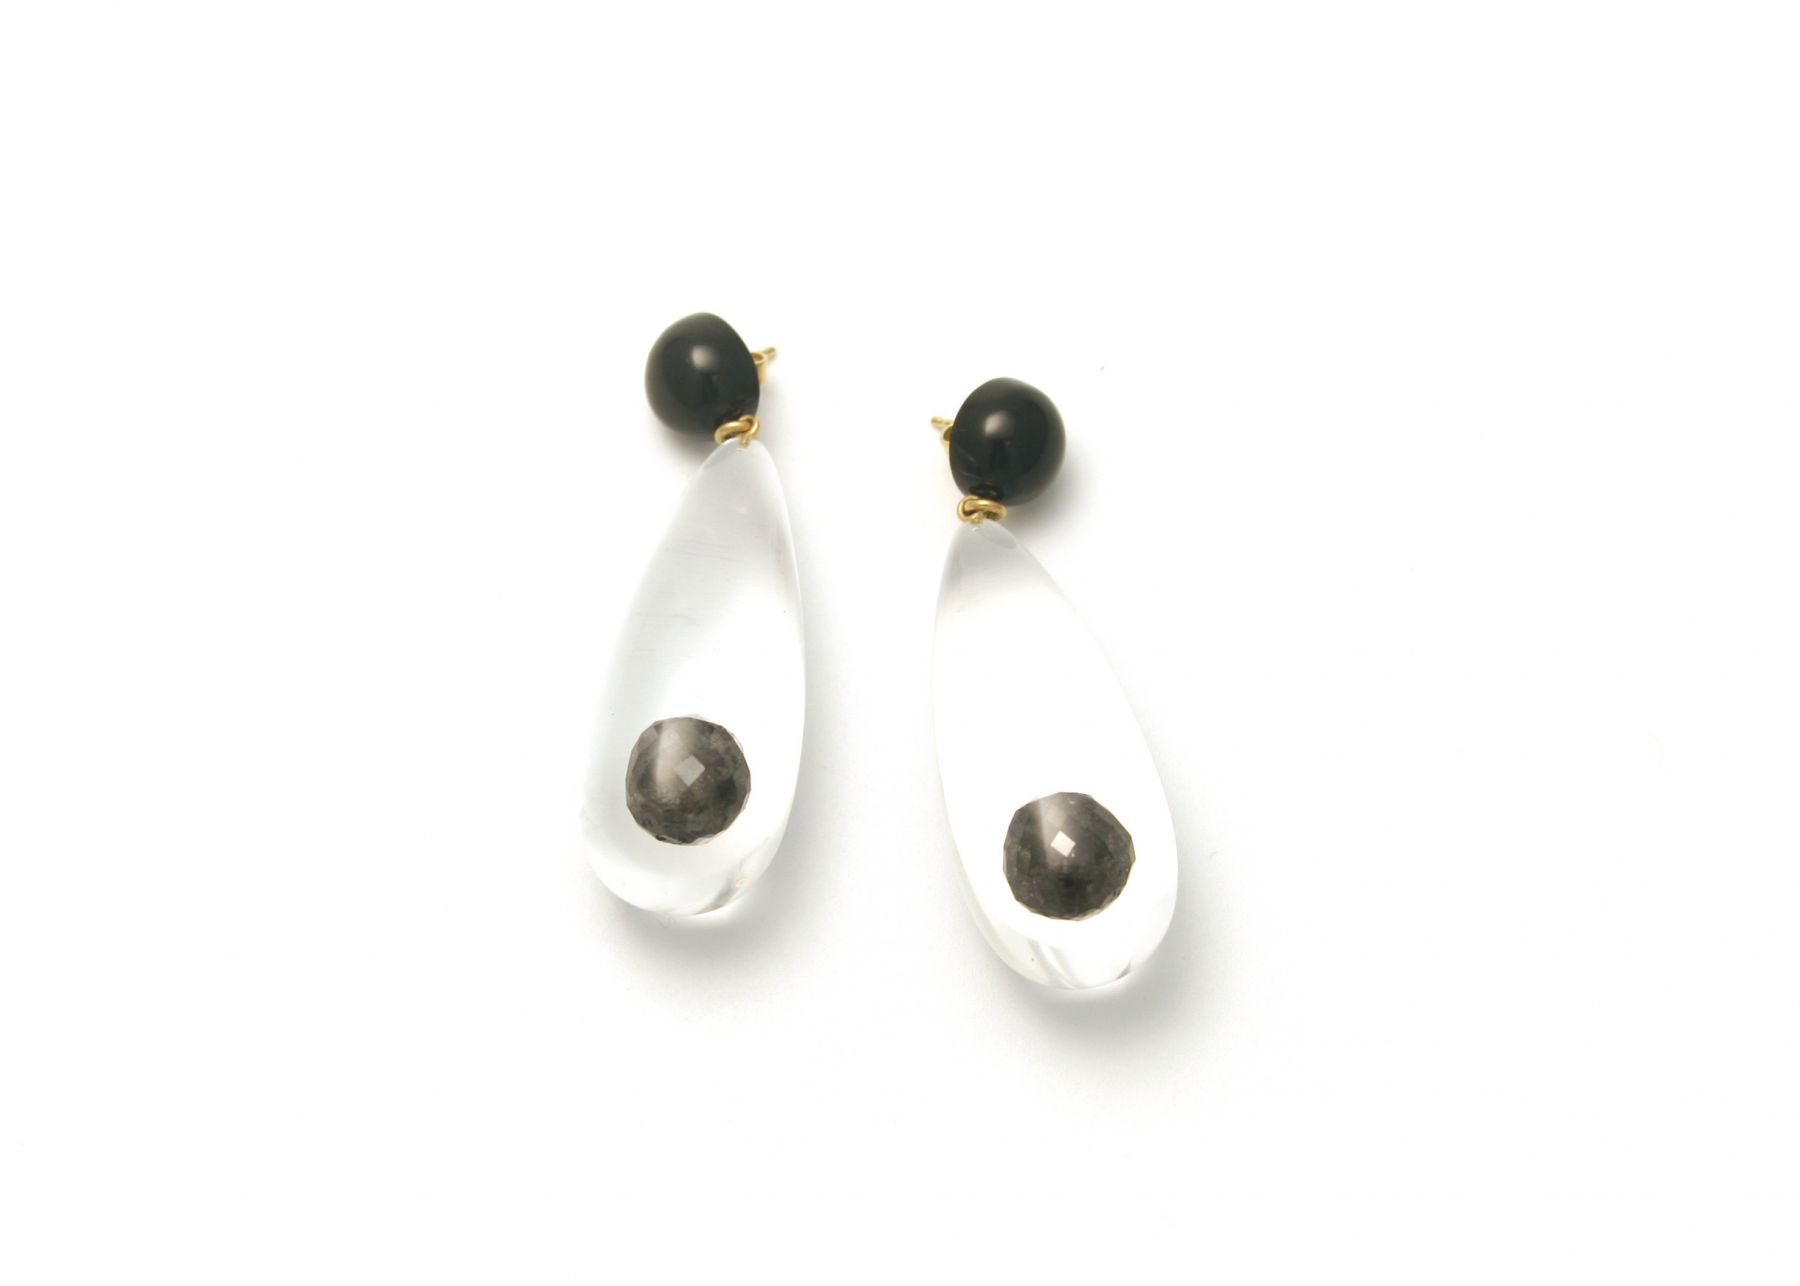 Ted Noten, earrings, black diamonds, Joost Lyppens